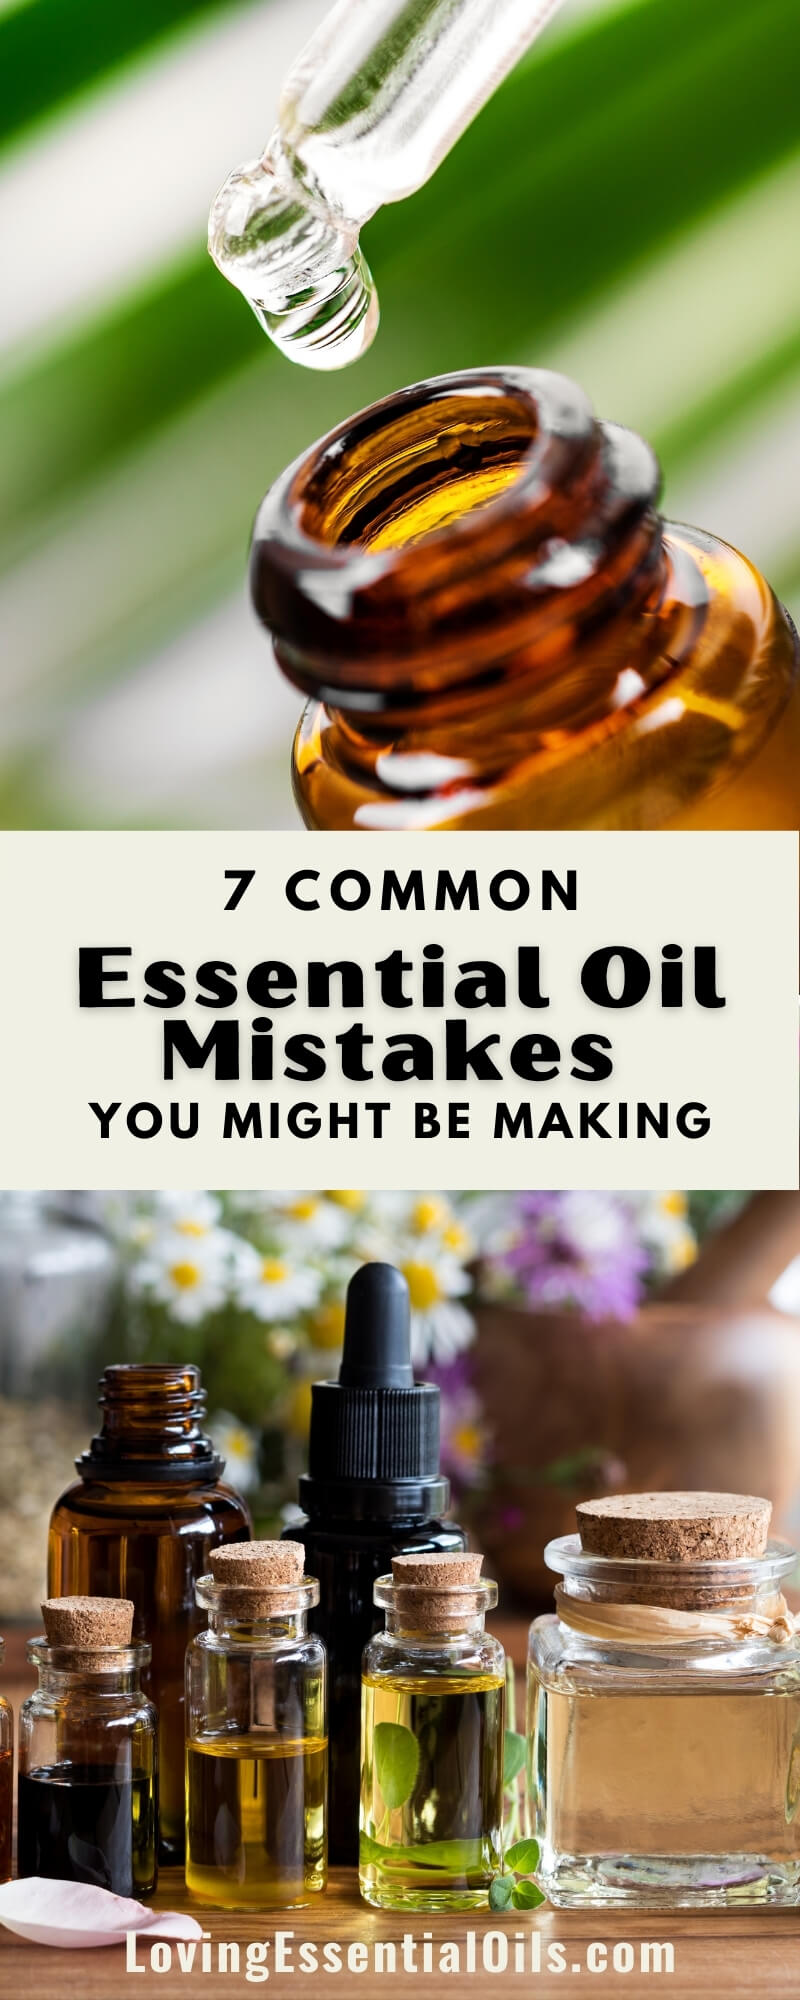 Essential Oil Safety Mistakes by Loving Essential Oils